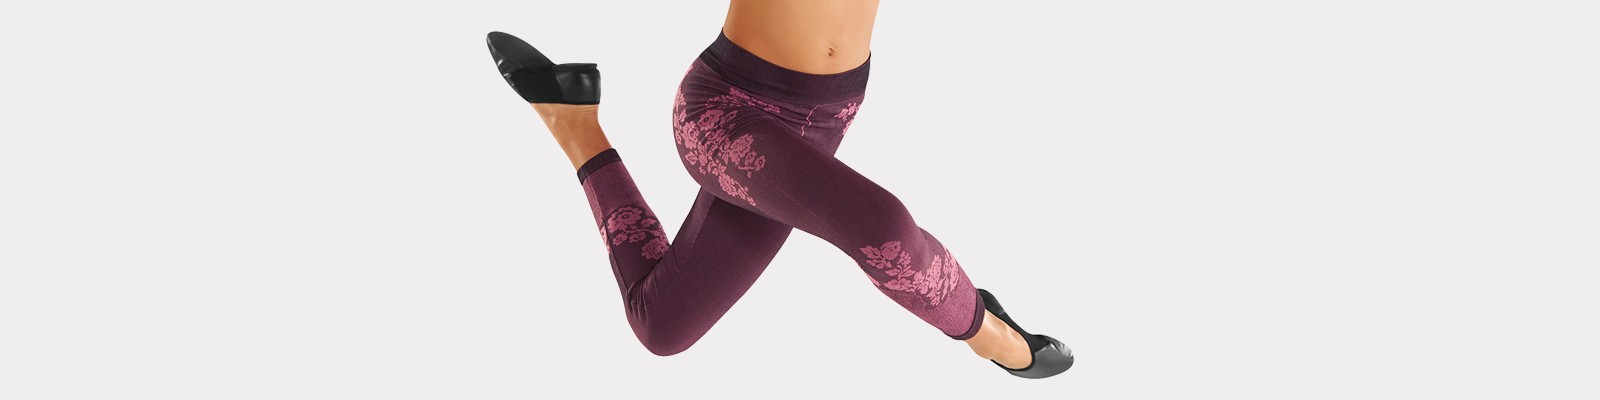 image - Girl's Activewear Bottoms